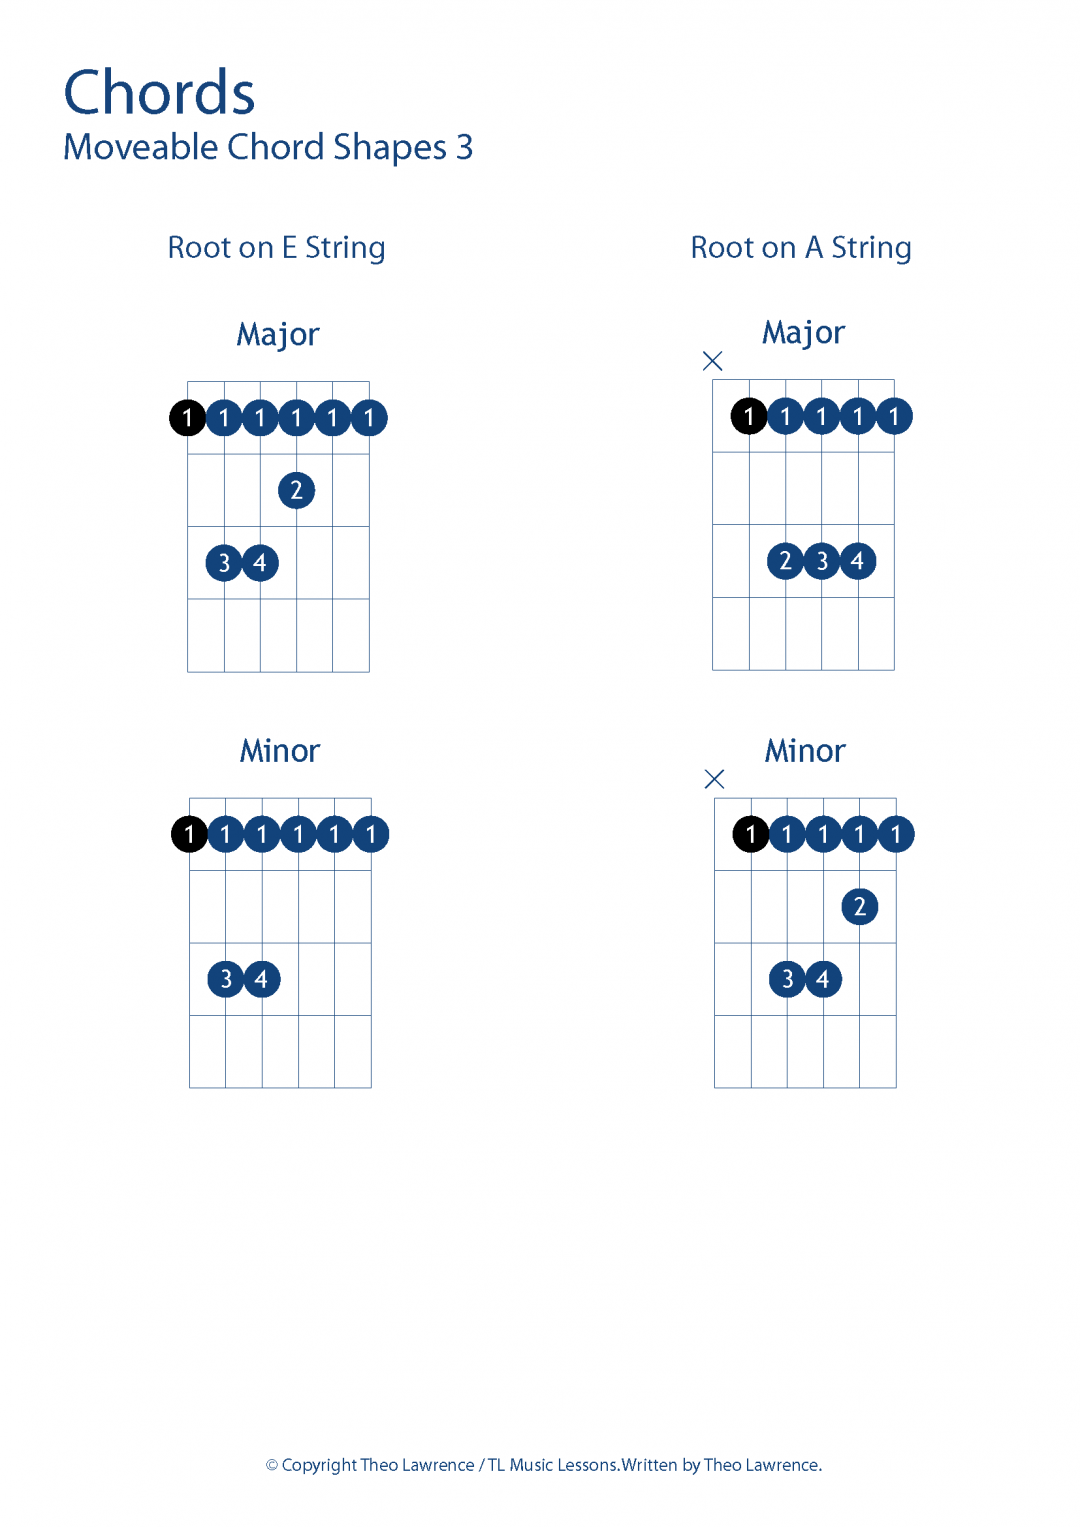 Moveable Barre Chord Shapes Grade 3 Level